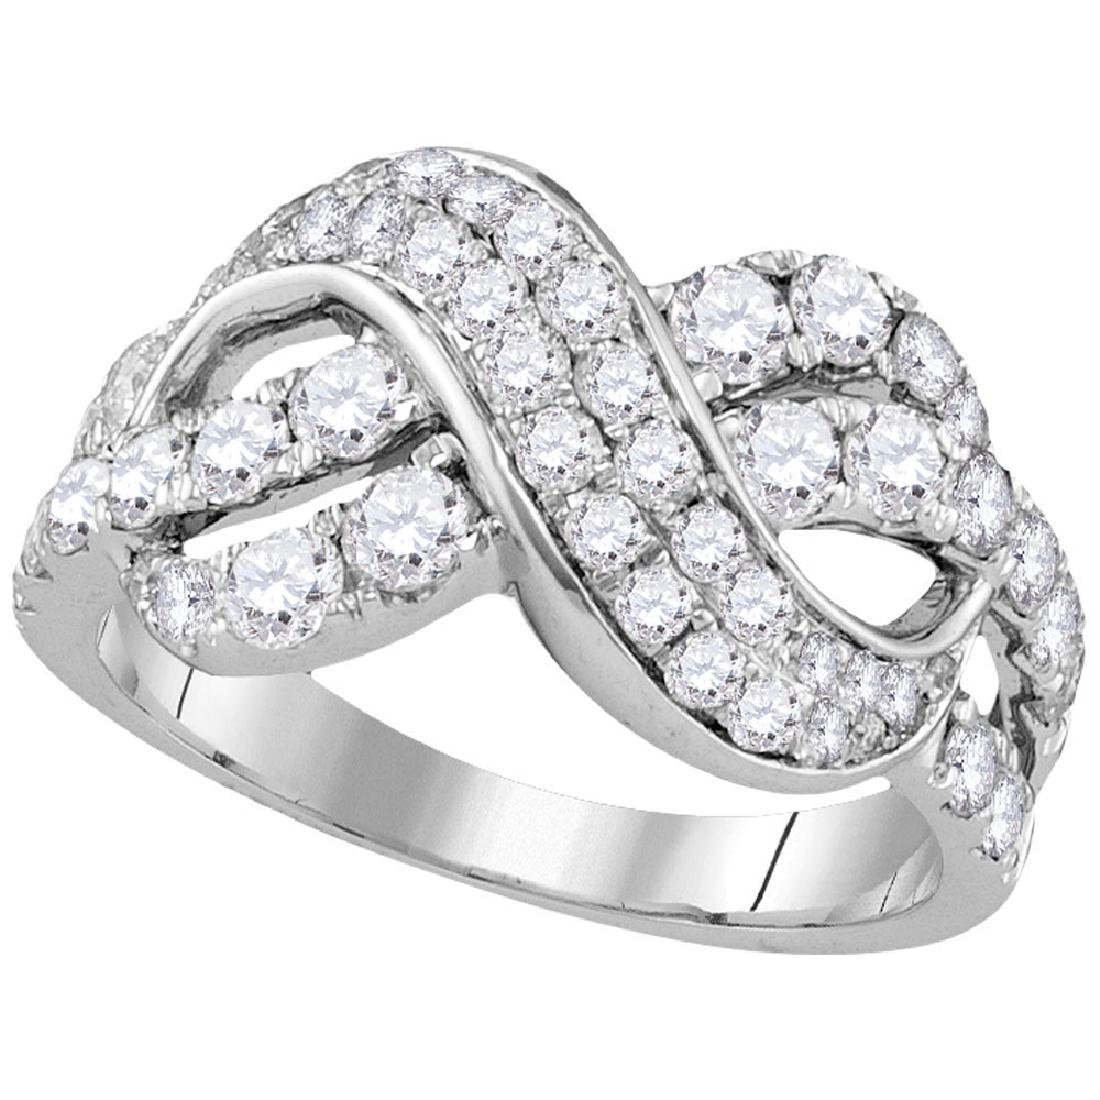 1.51 CTW Pave-set Diamond Infinity Crossover Ring 14KT